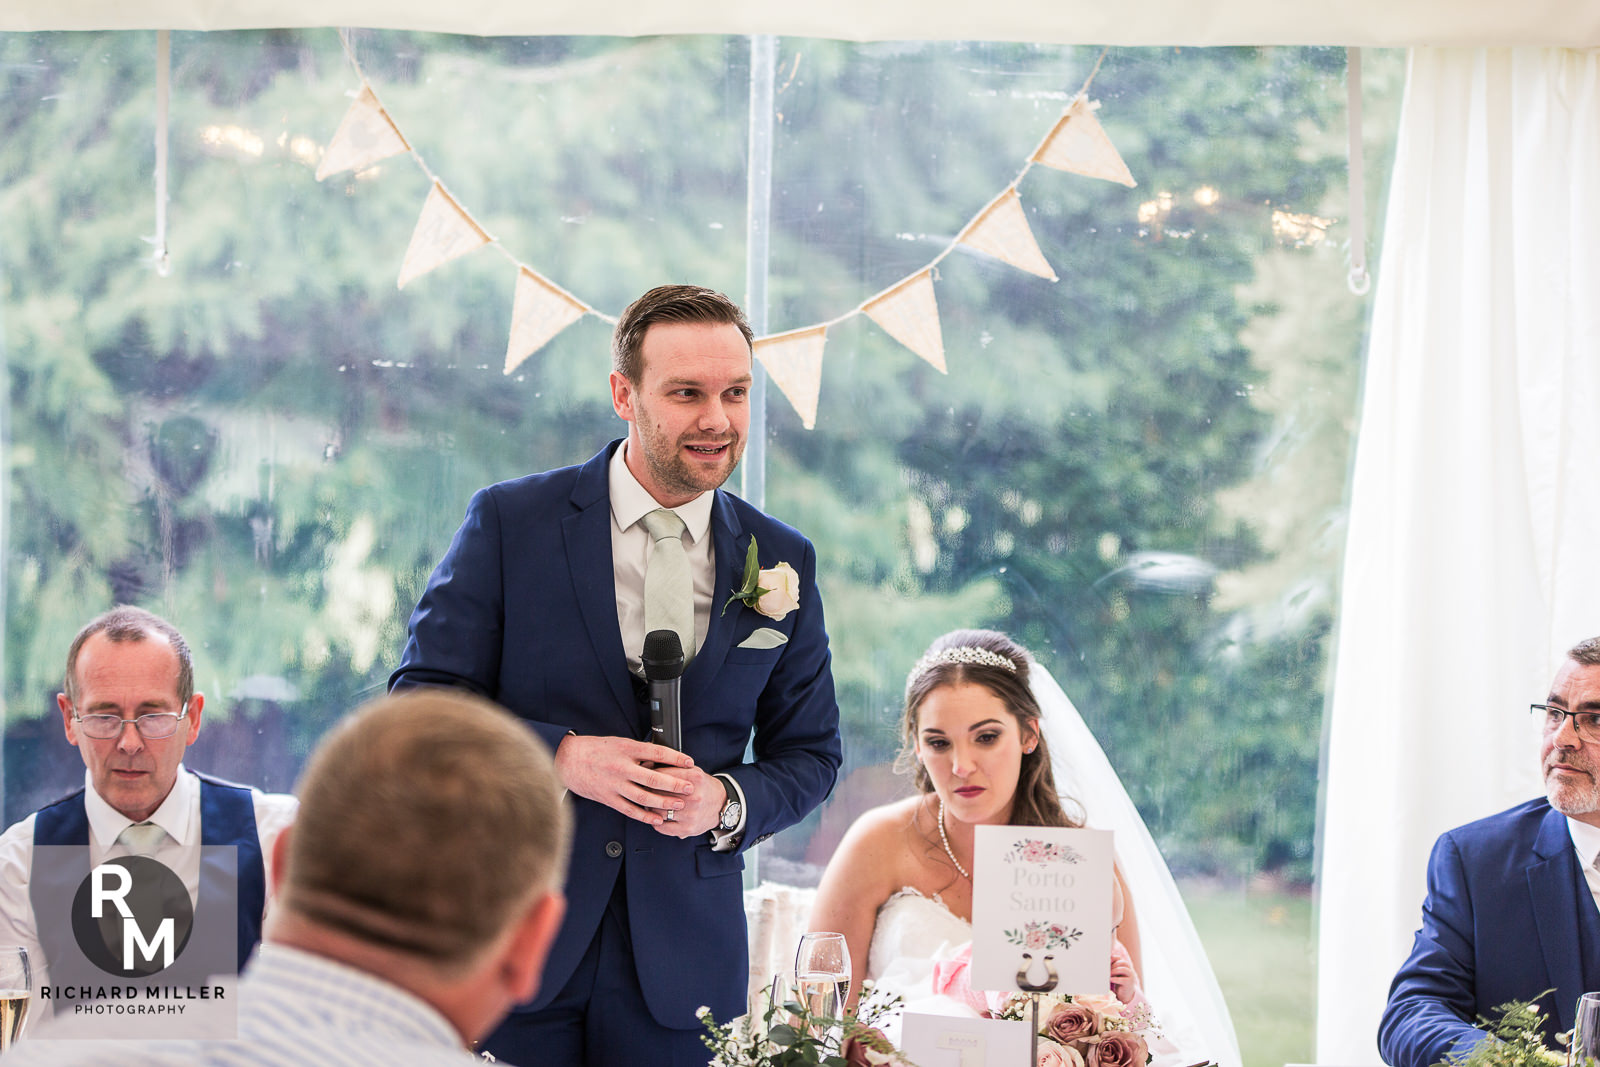 P R 47 - Pete & Roxy's Soughton Hall Outdoor Wedding